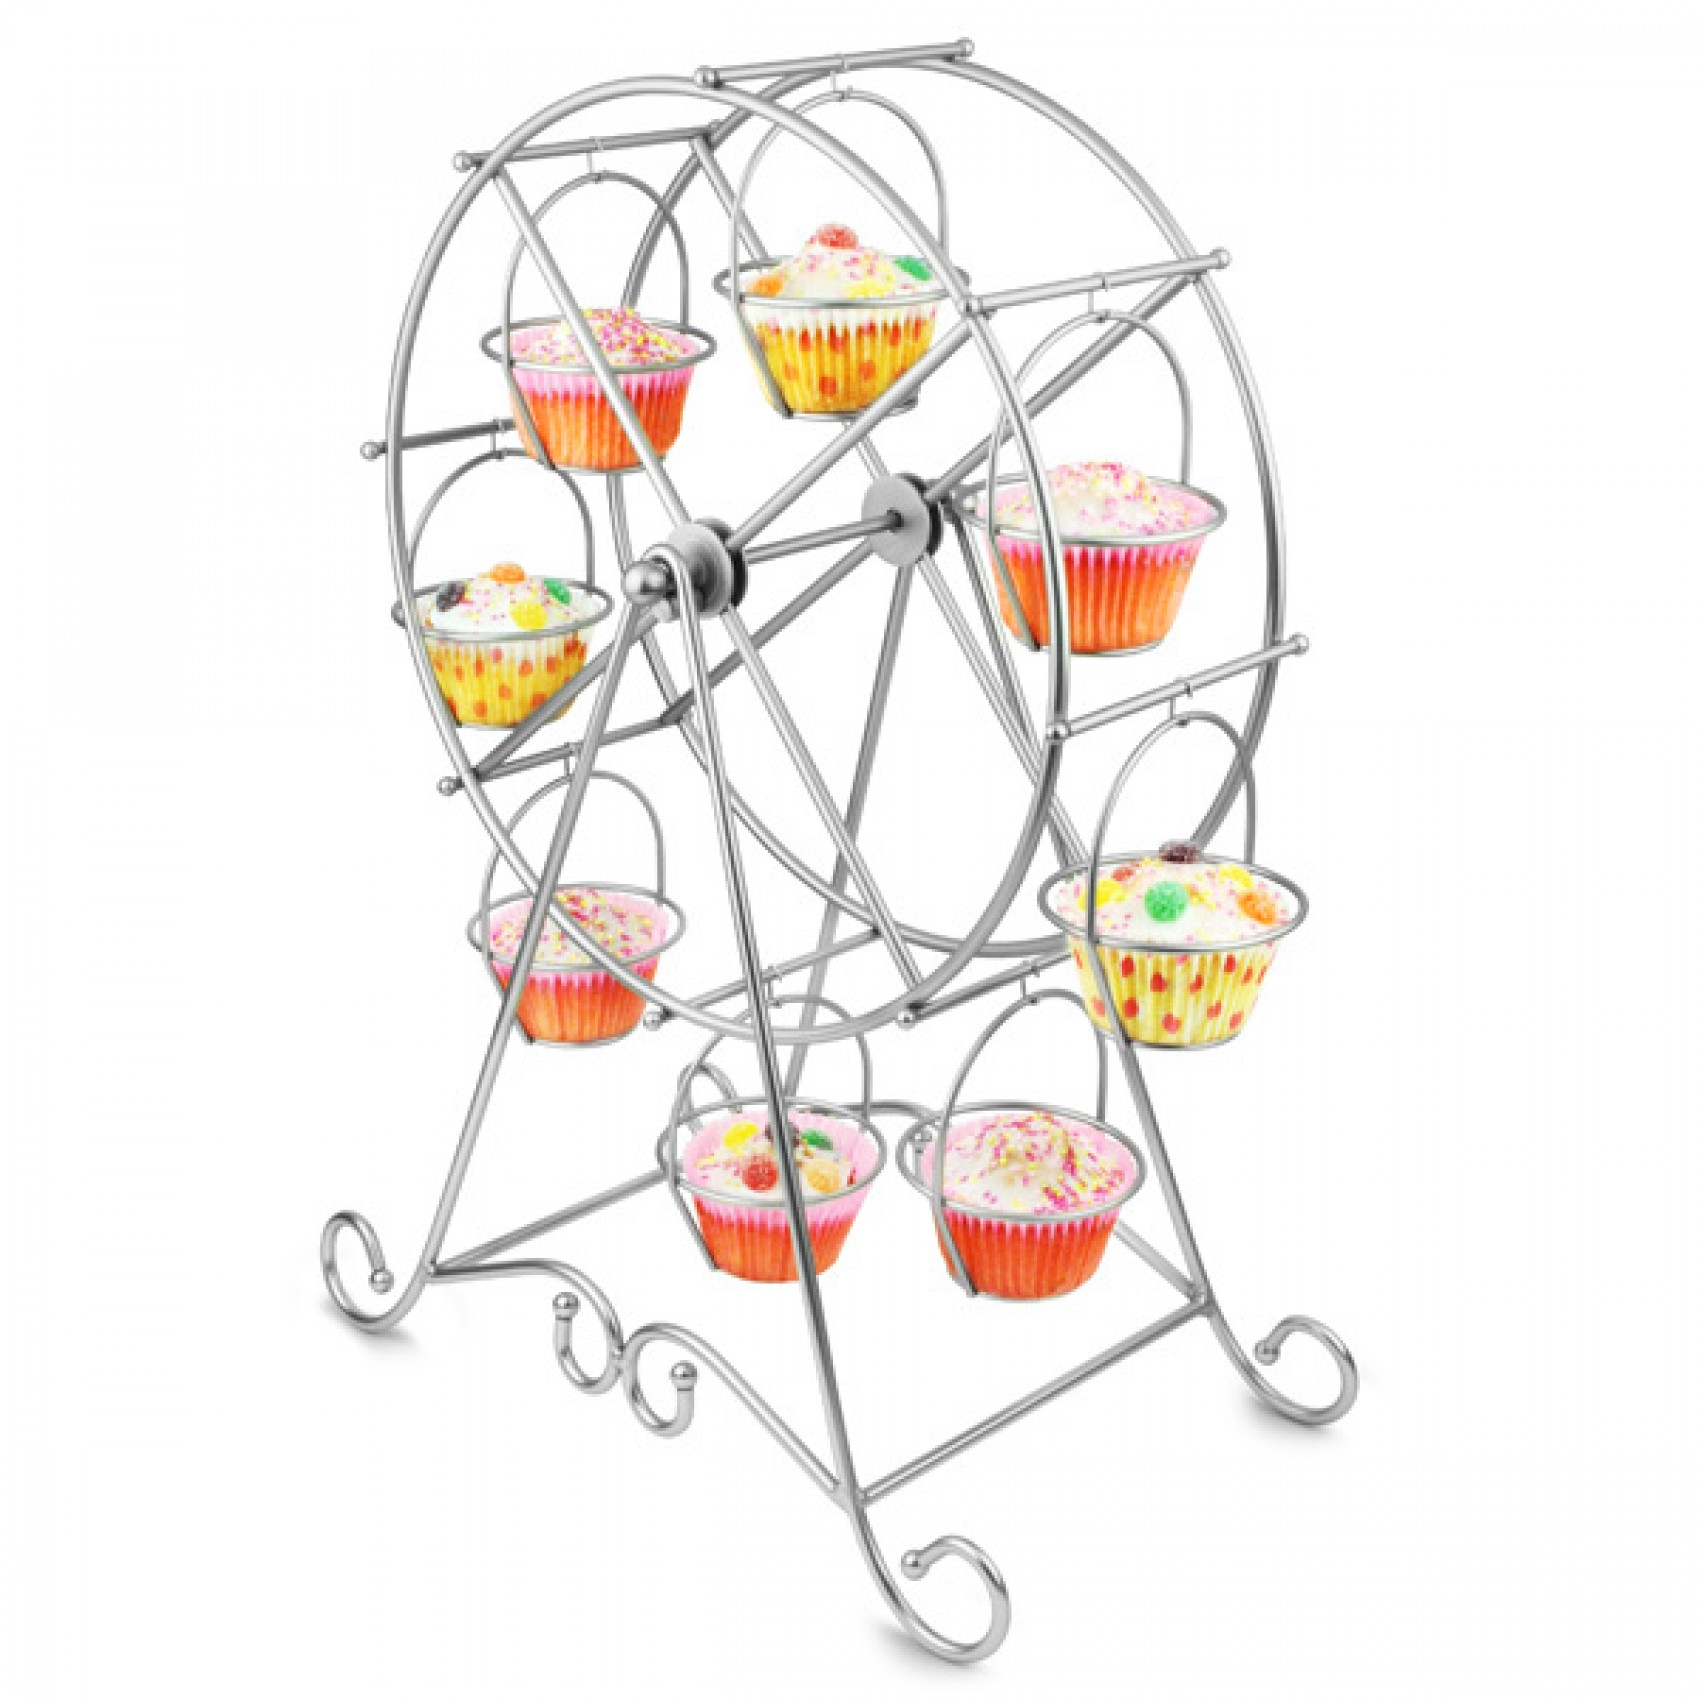 Attractive ferris wheel cupcake holder for carnival party with ferris wheel cupcake stand